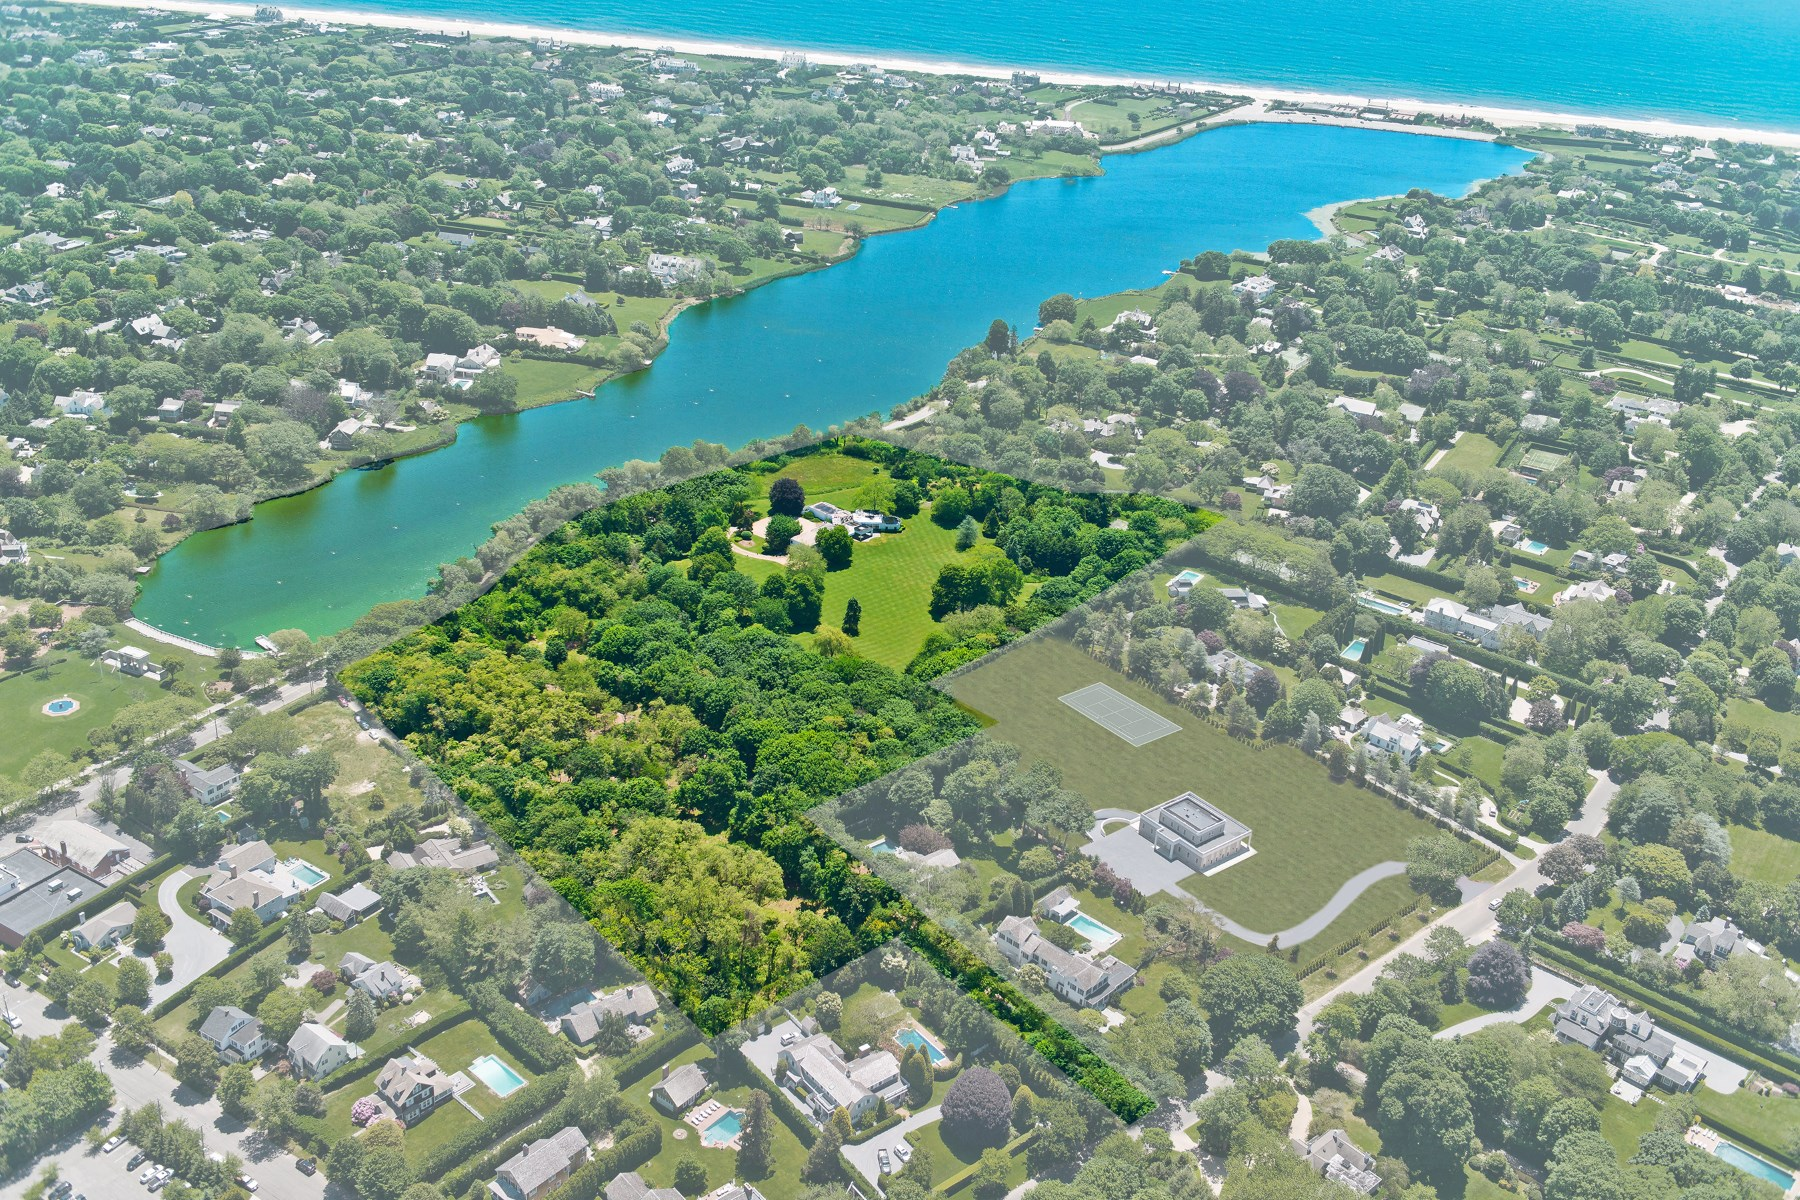 一戸建て のために 売買 アット Overlooking Lake Agawam 111, 137, 153 Pond Lane & 52 First Neck Lane 4 properties combined, Southampton Estate Section, Southampton, ニューヨーク, 11968 アメリカ合衆国